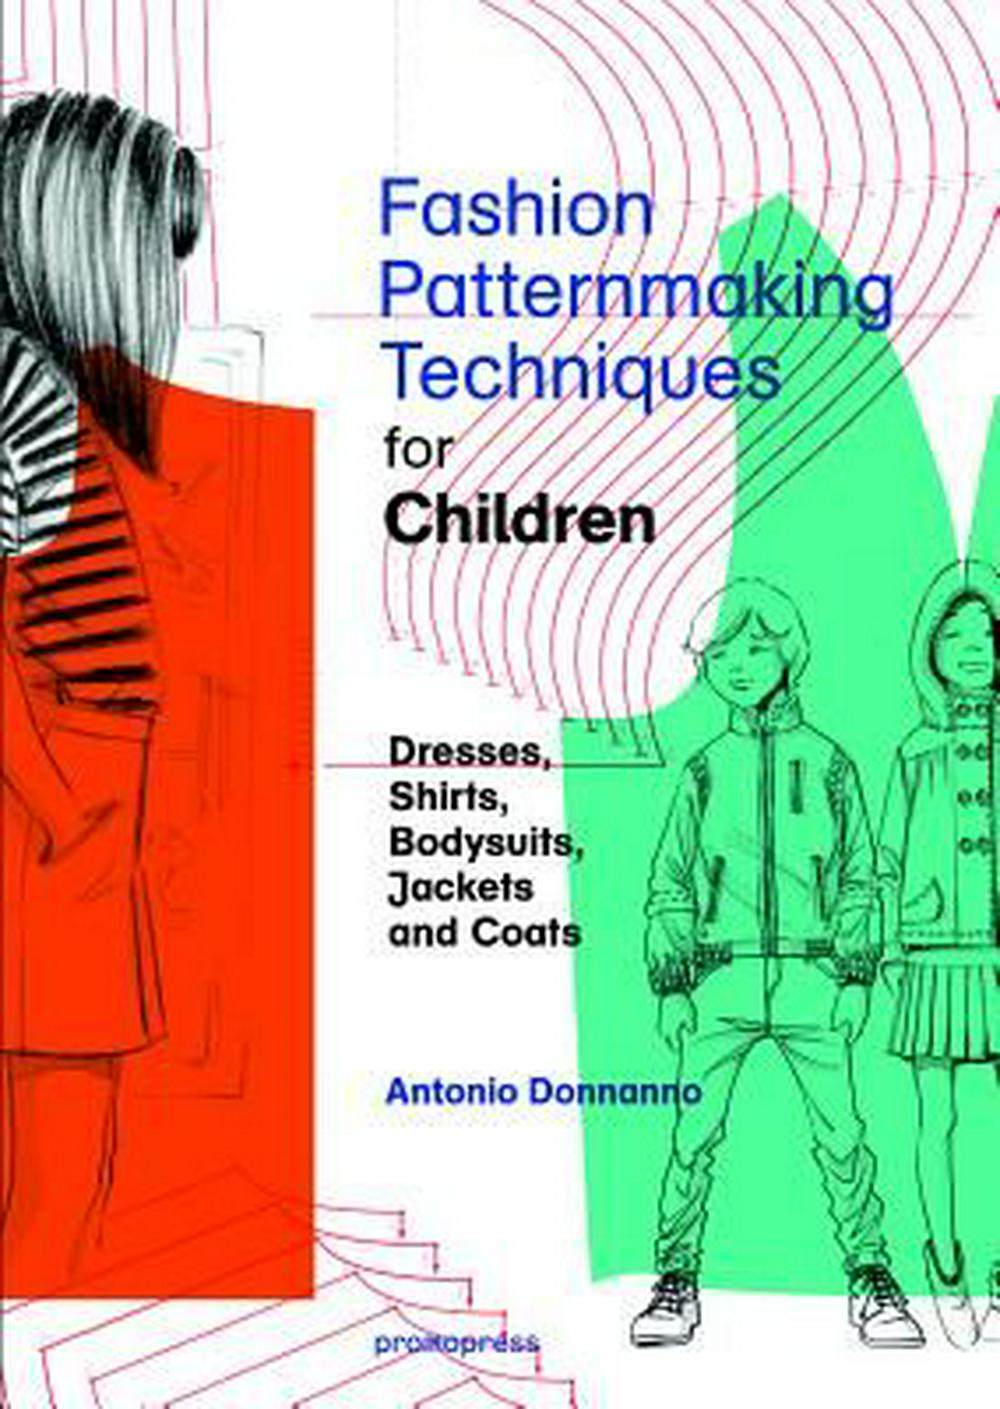 Fashion Patternmaking Techniques for Children